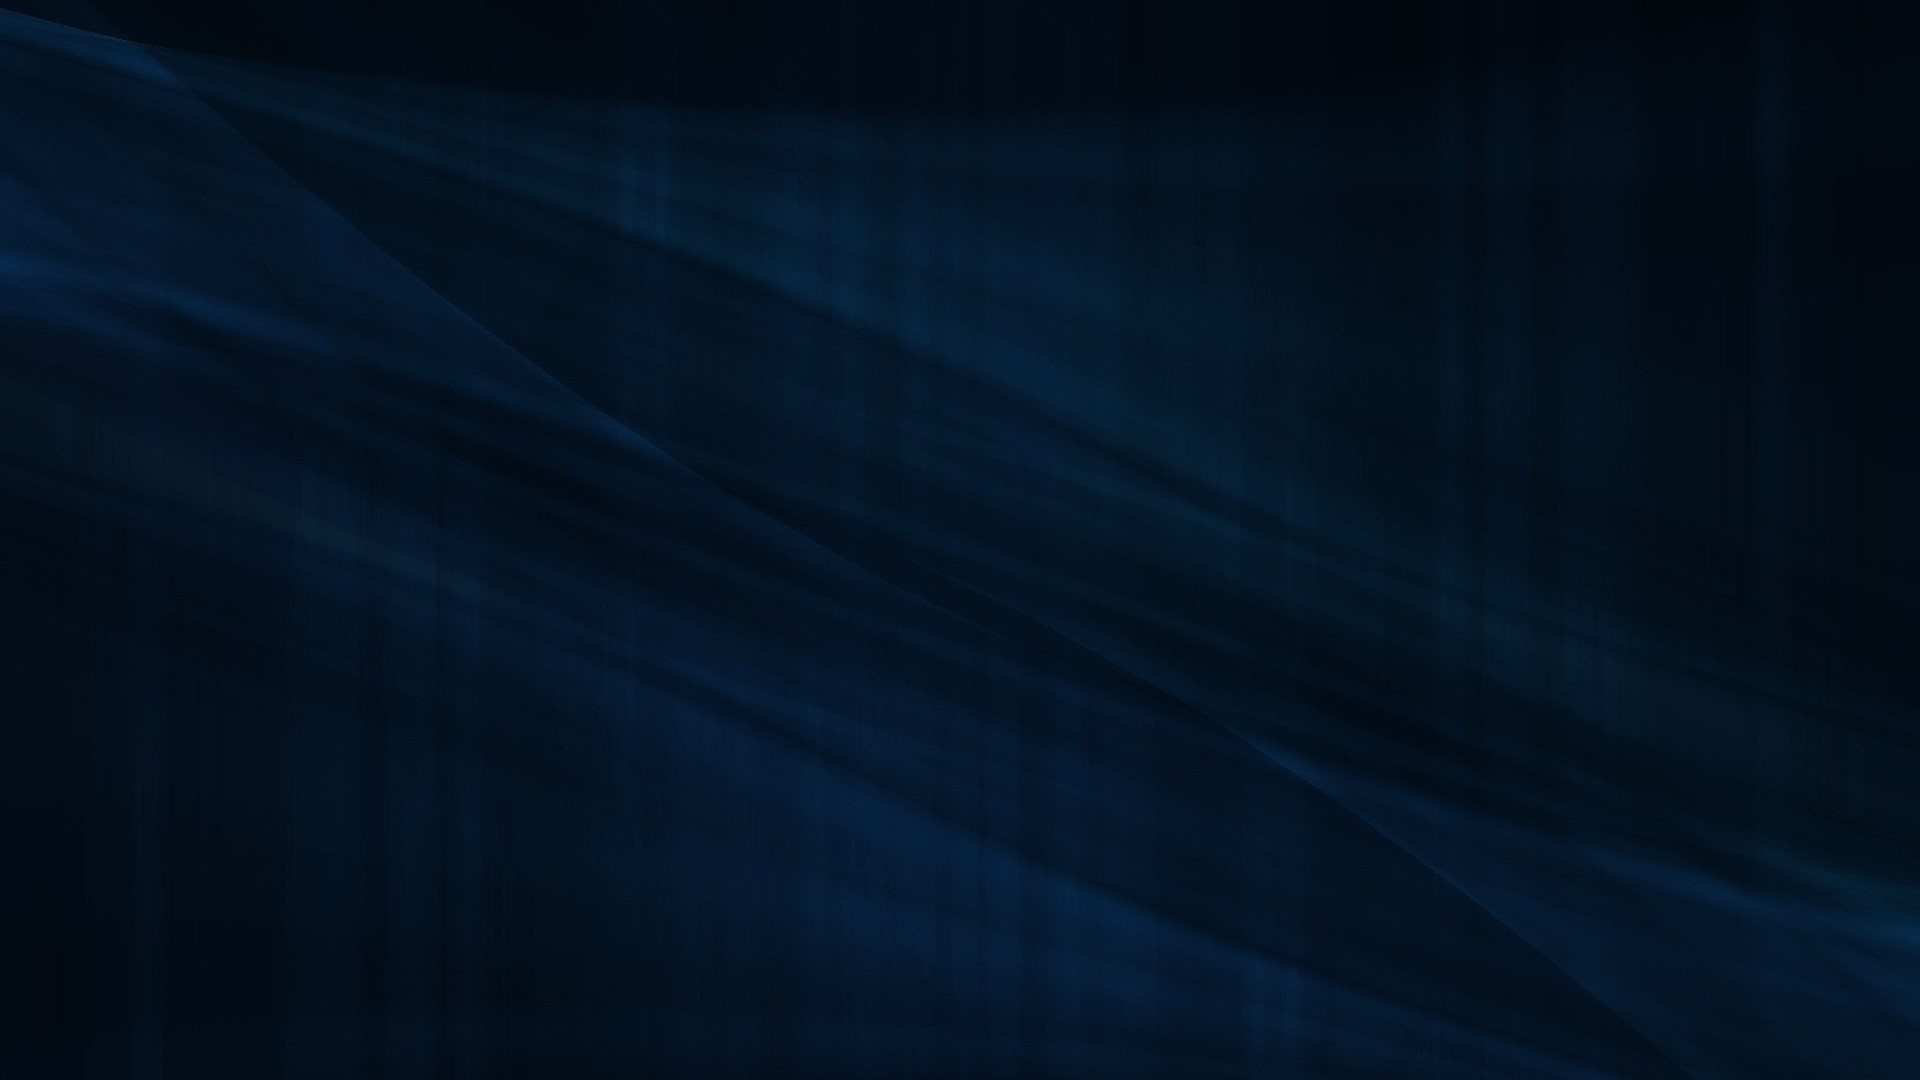 Blue abstract wallpapers 78 background pictures - Wallpaper 1920x1080 abstract ...